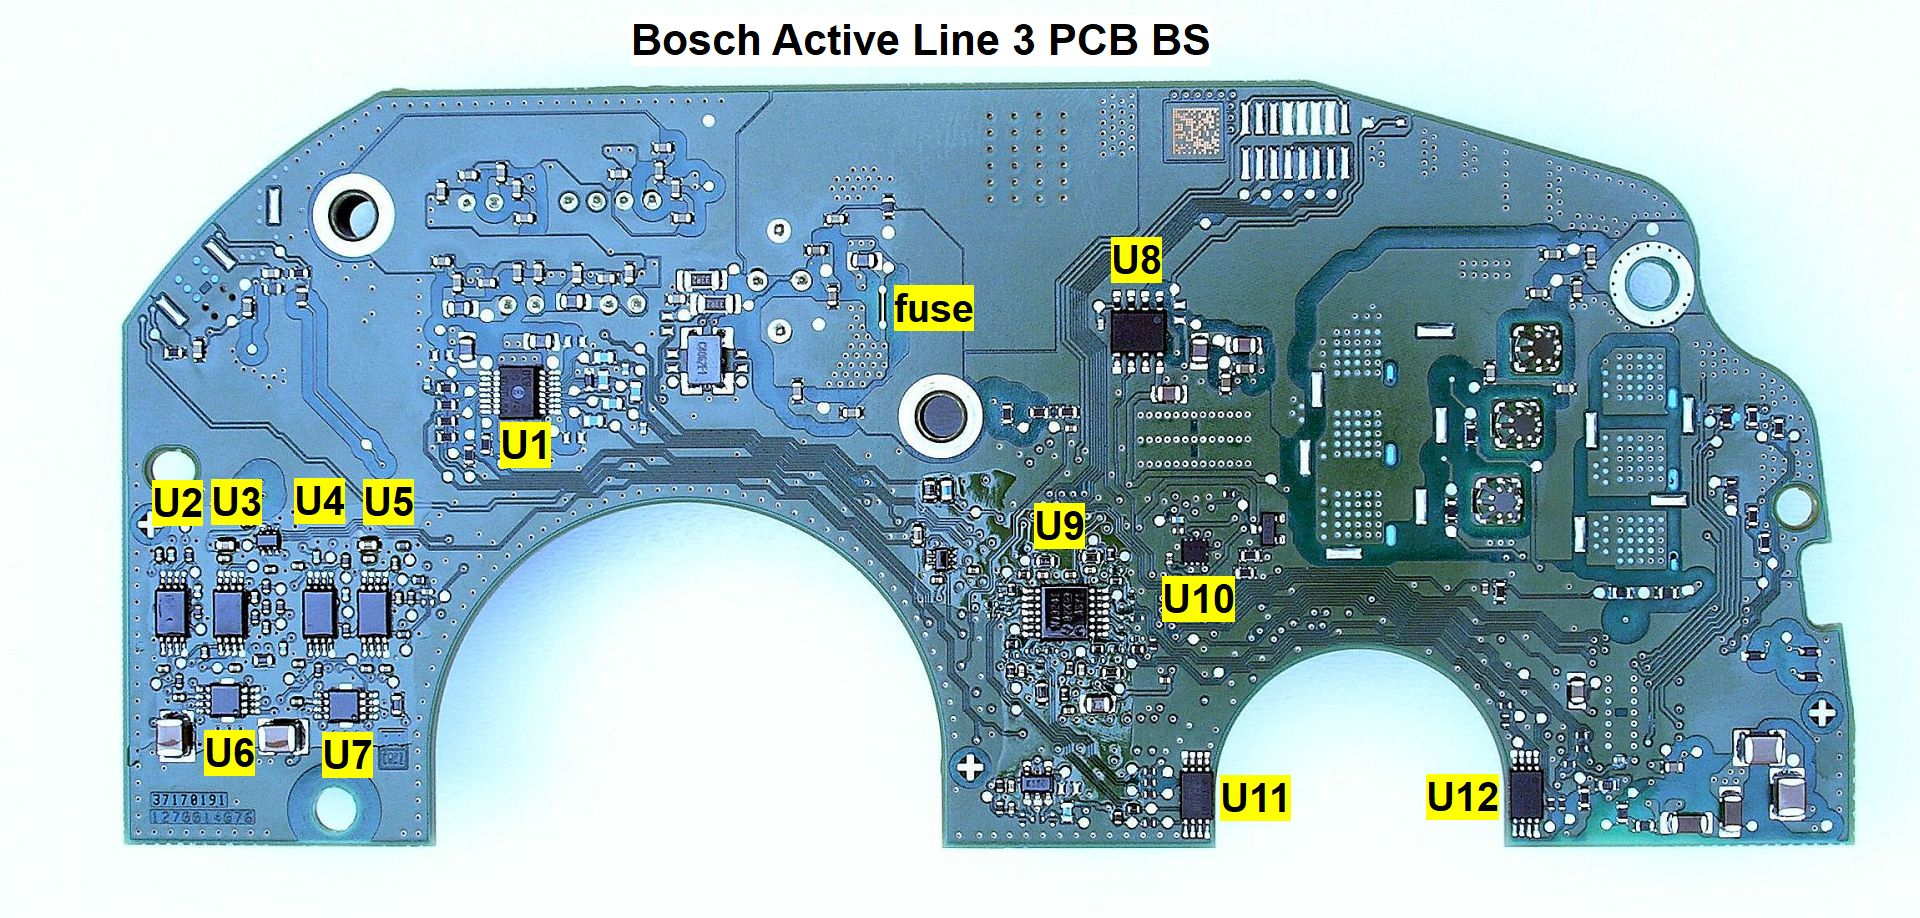 Bosch Active Line 3 Pcb